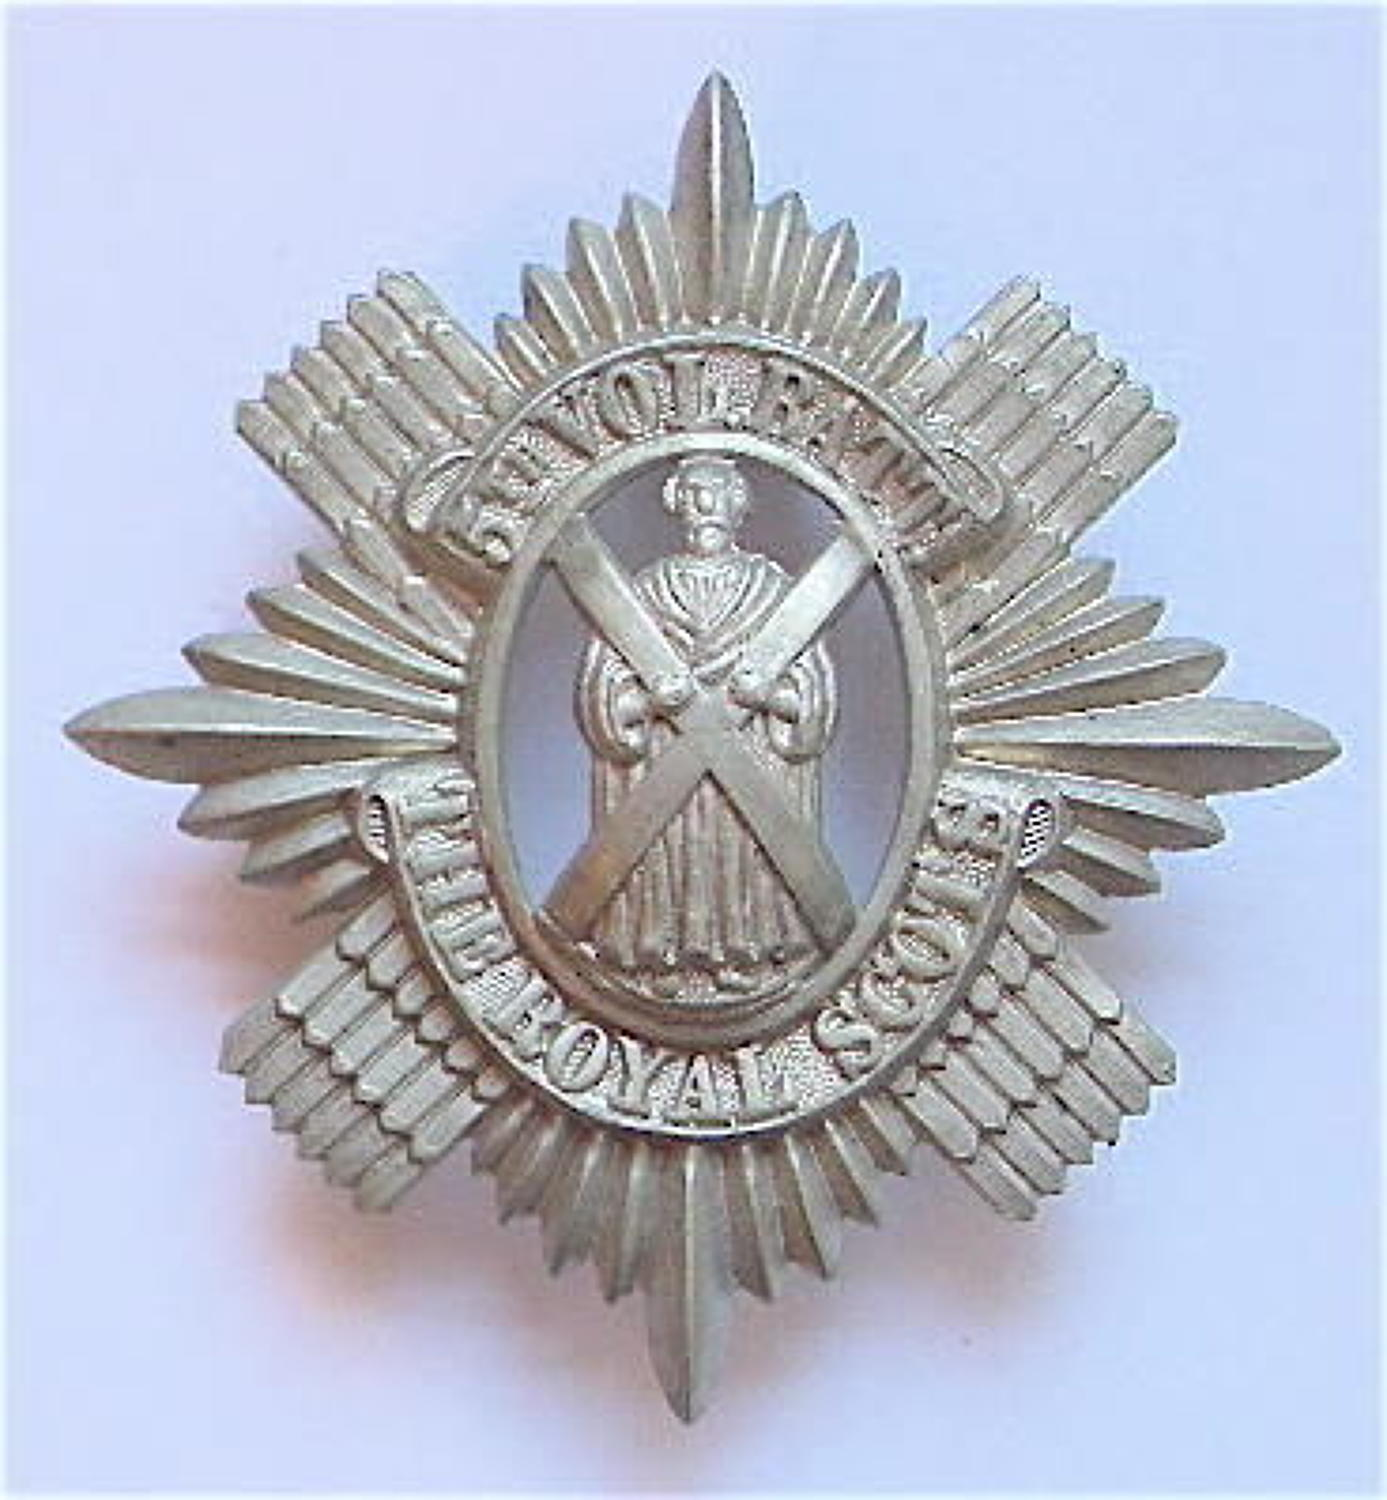 Scottish. 5th VB Royal Scots glengarry badge circa 1888-1908